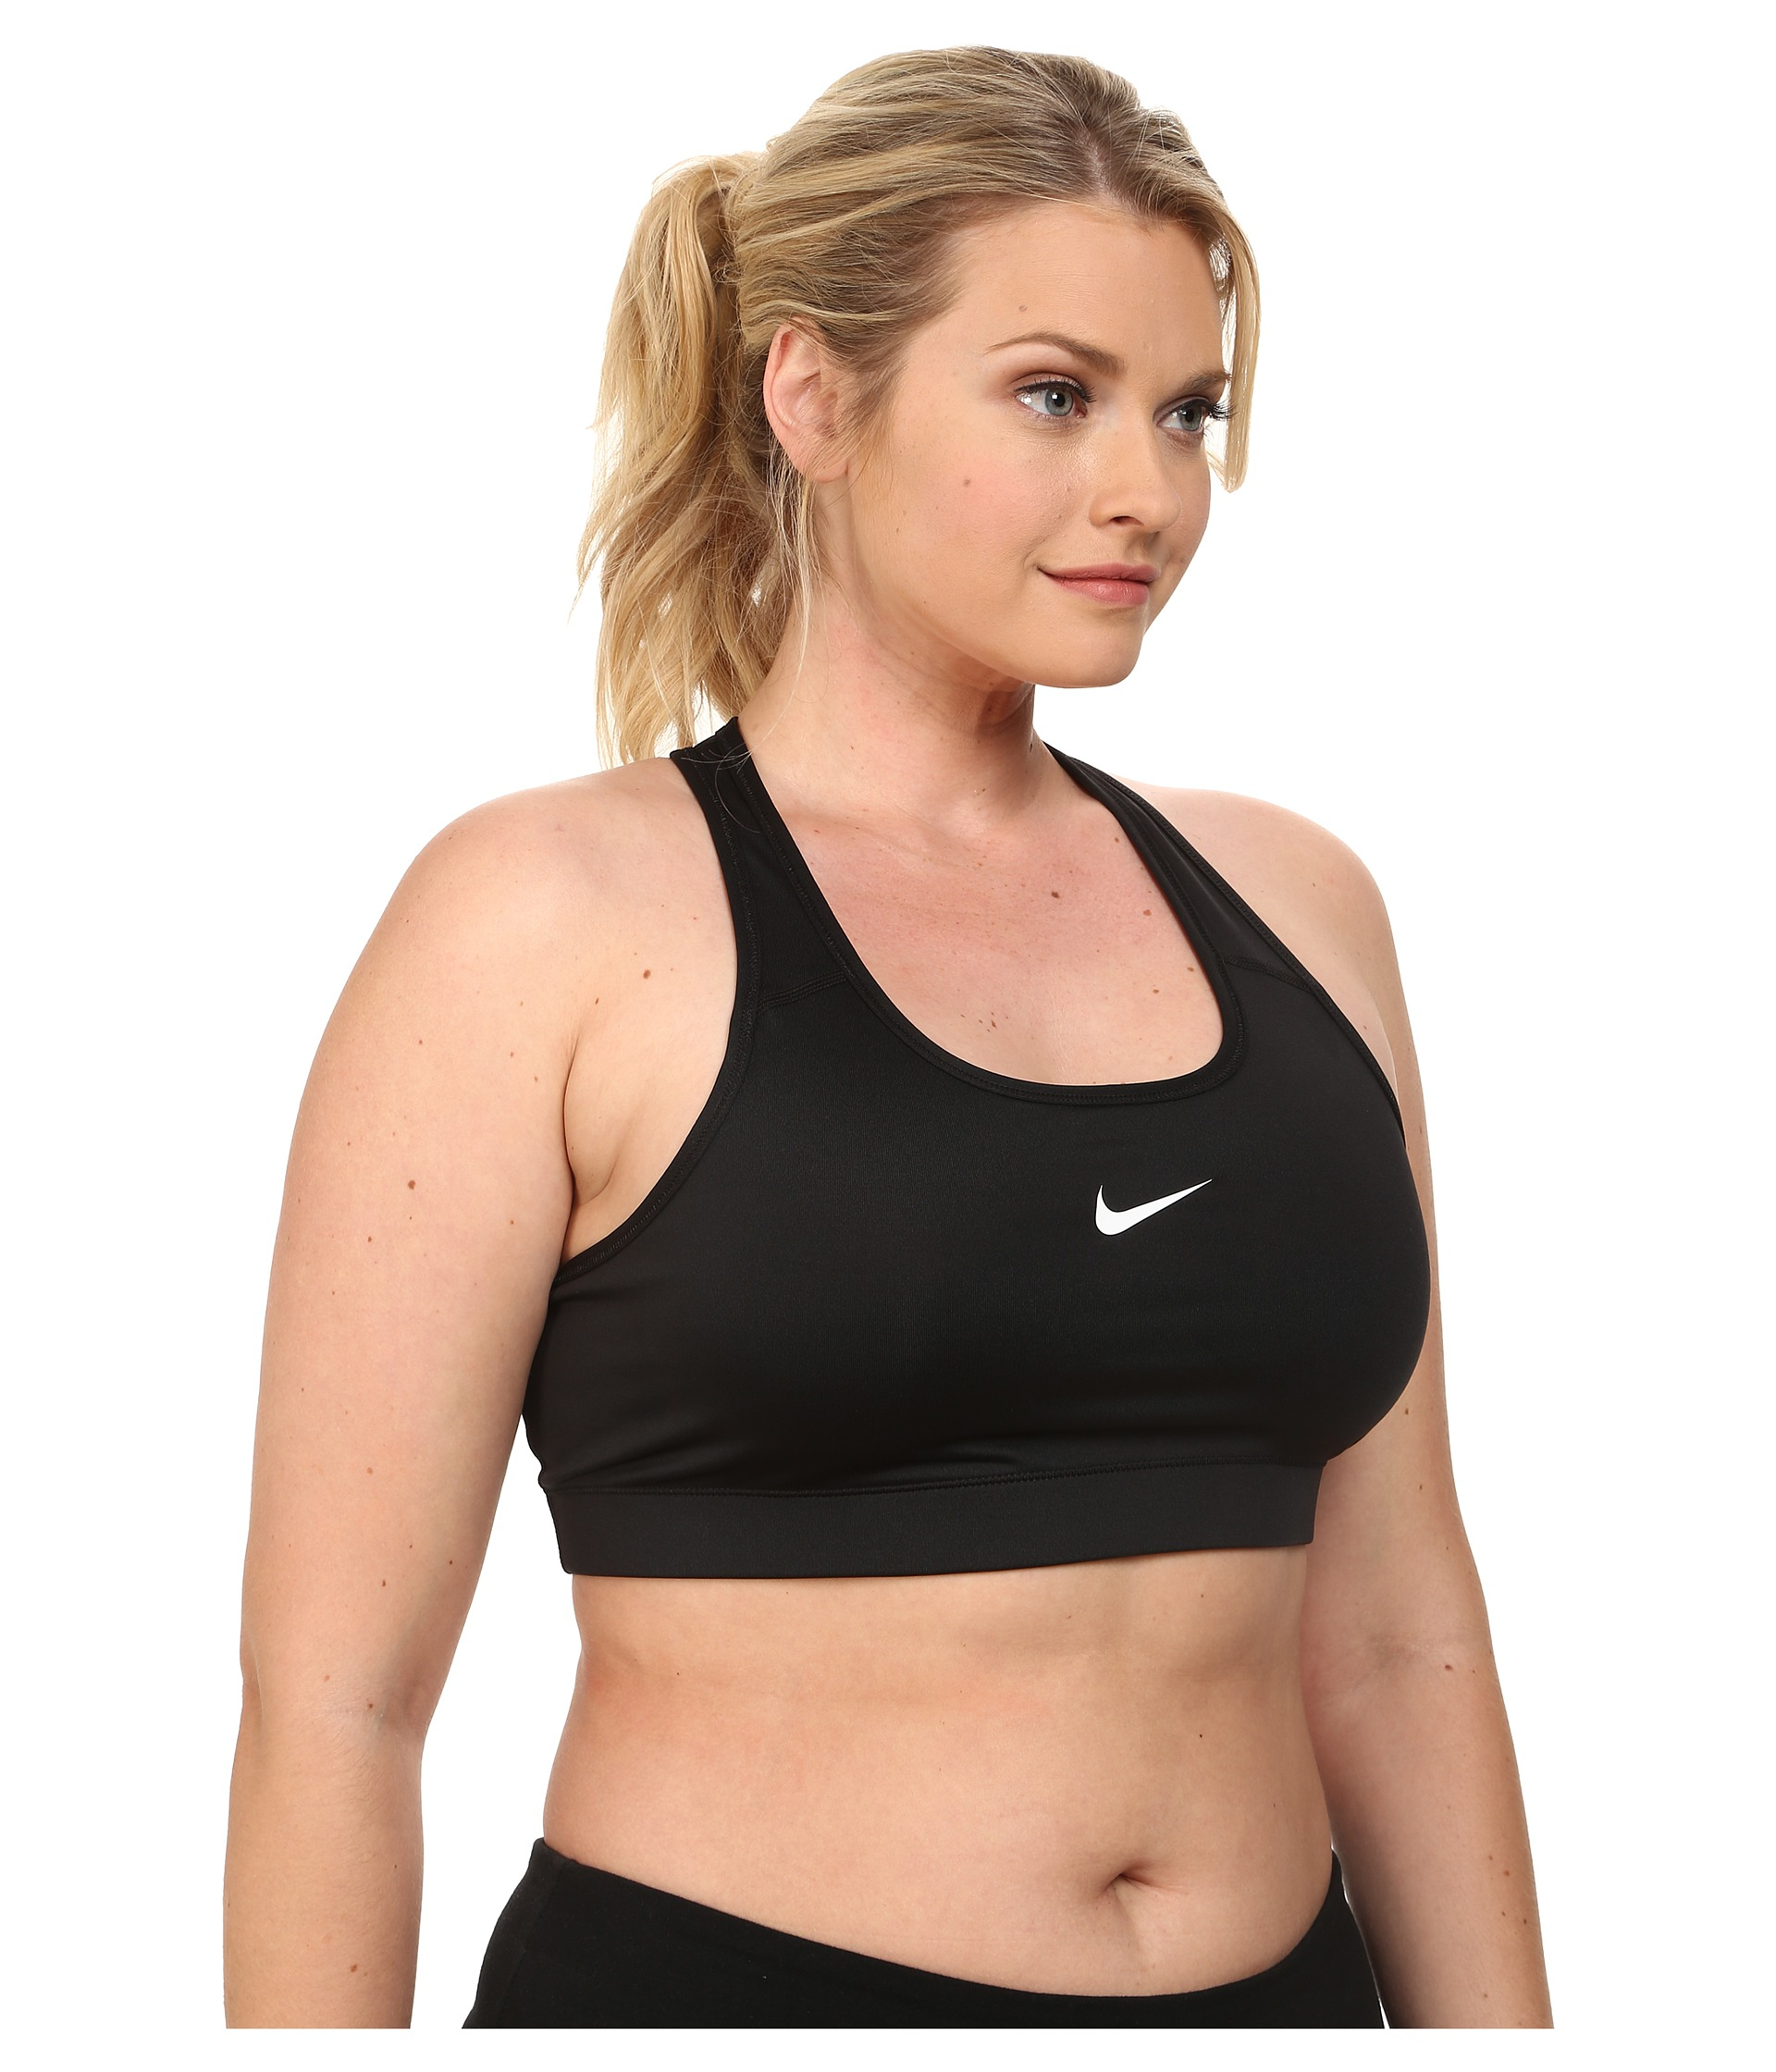 eac840ea57 Lyst - Nike Pro Victory Compression Sports Bra (2xl 3xl) in Black